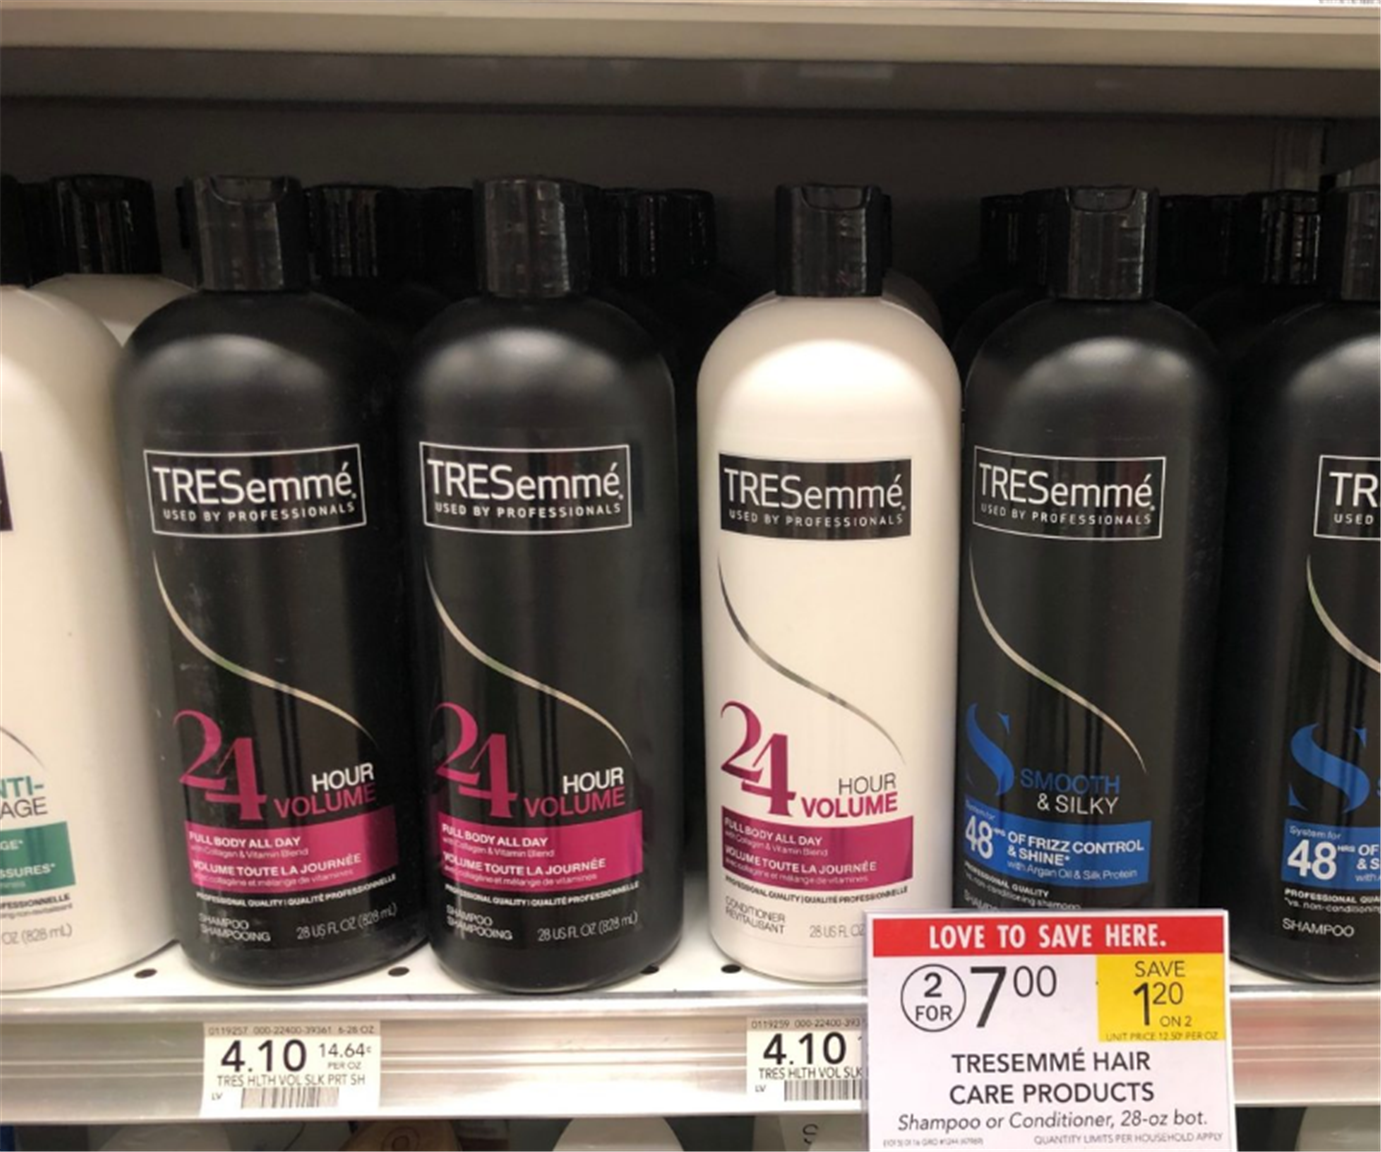 Publix – TRESemme Hair Care Only $1.50! Hurry! Expires 1/19/20!